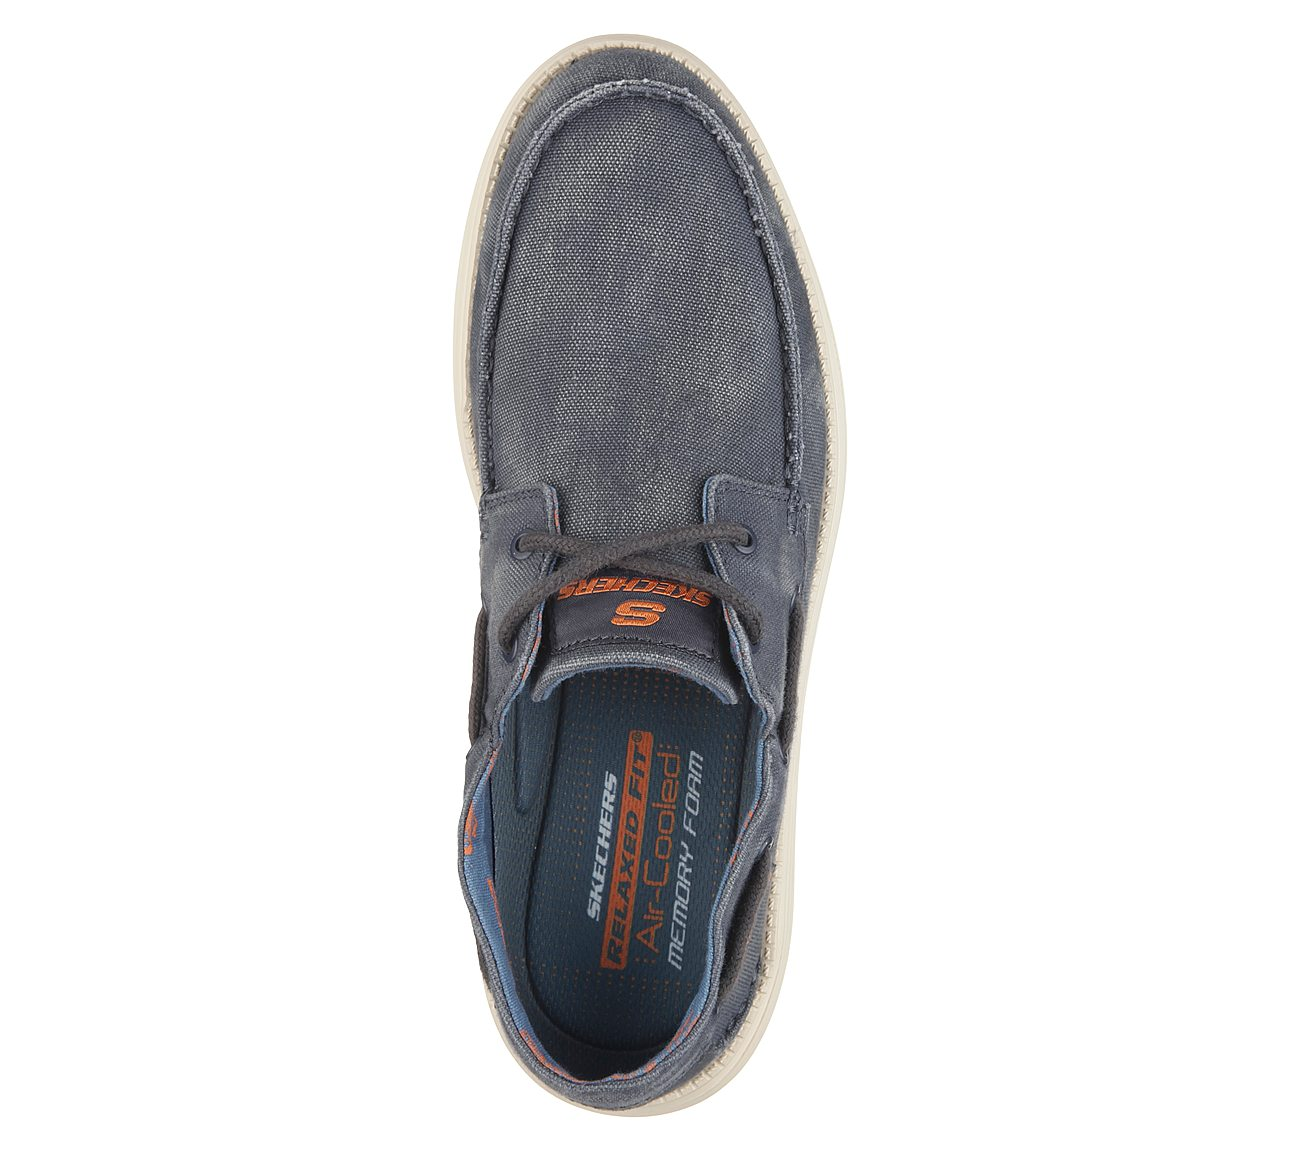 64ff61d1056f Buy SKECHERS Relaxed Fit  Status - Melec SKECHERS USA Shoes only £49.00